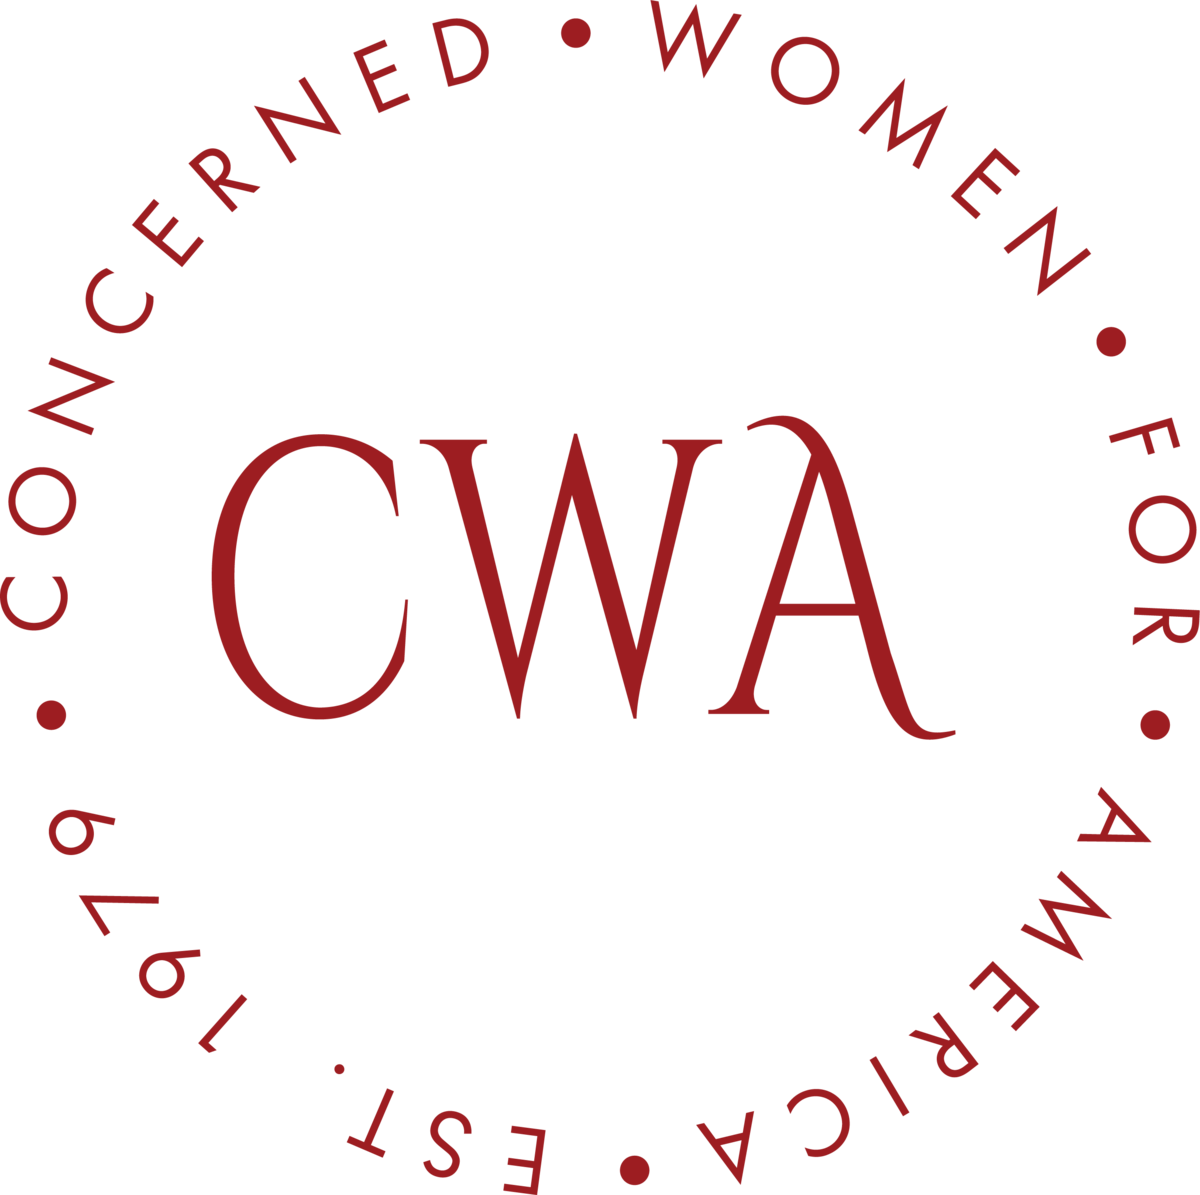 Concerned Women for America - Wikipedia